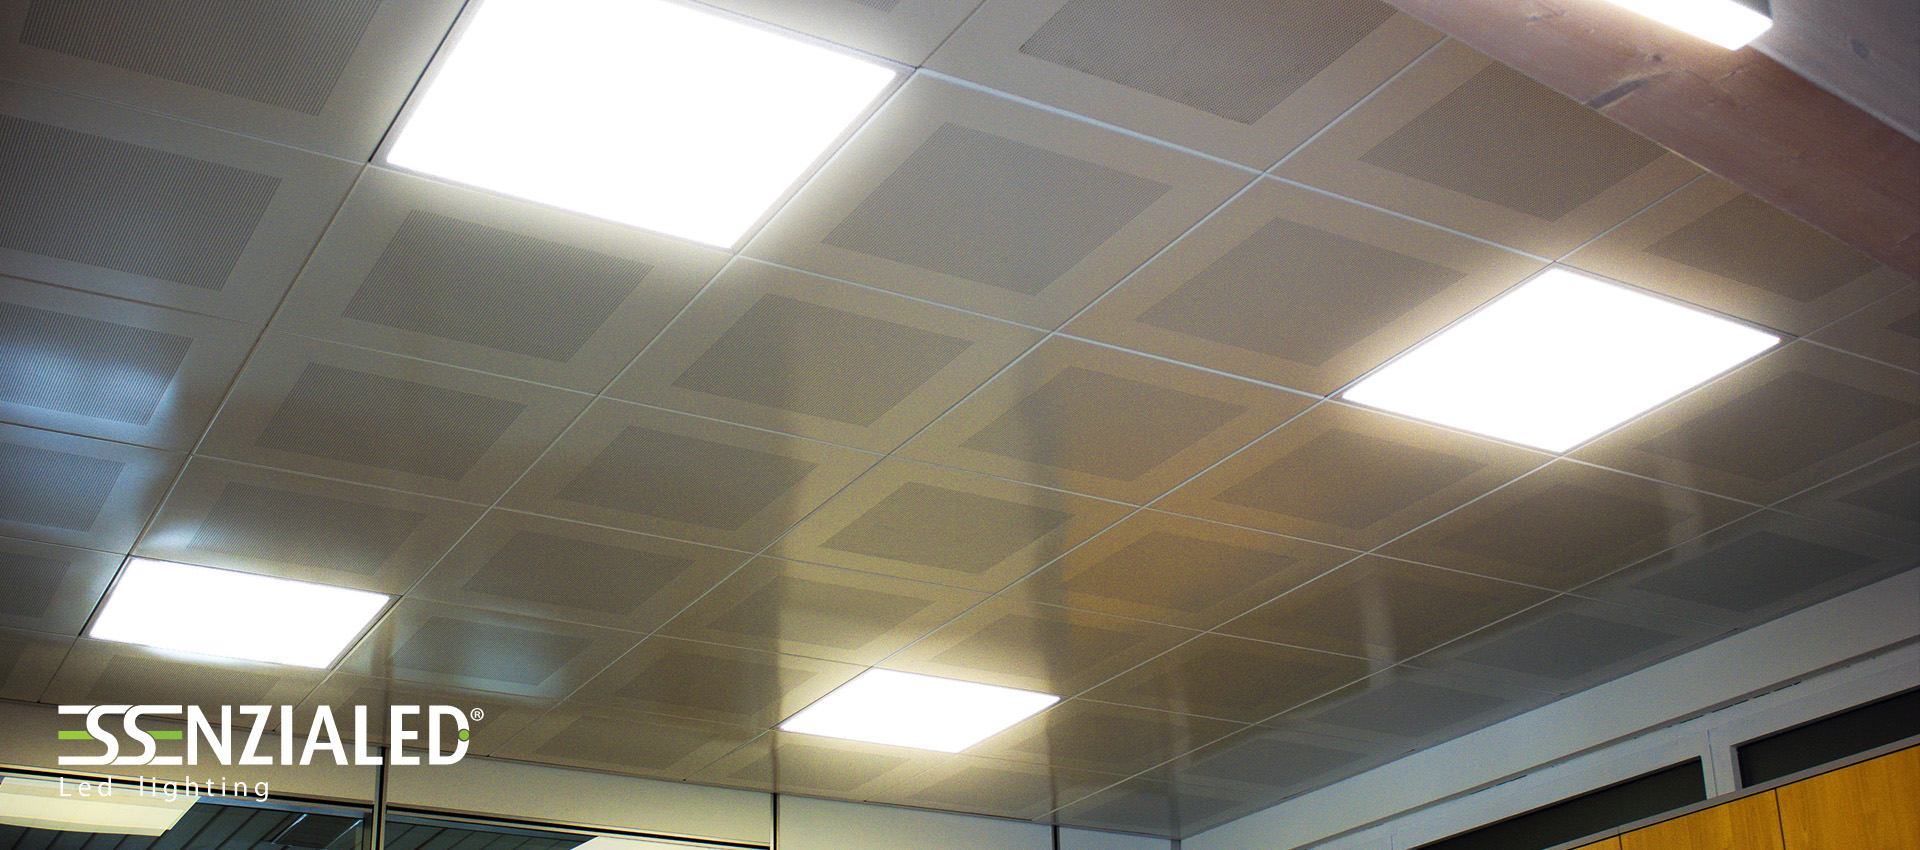 Lampade per controsoffitto 60 60 for Led controsoffitto